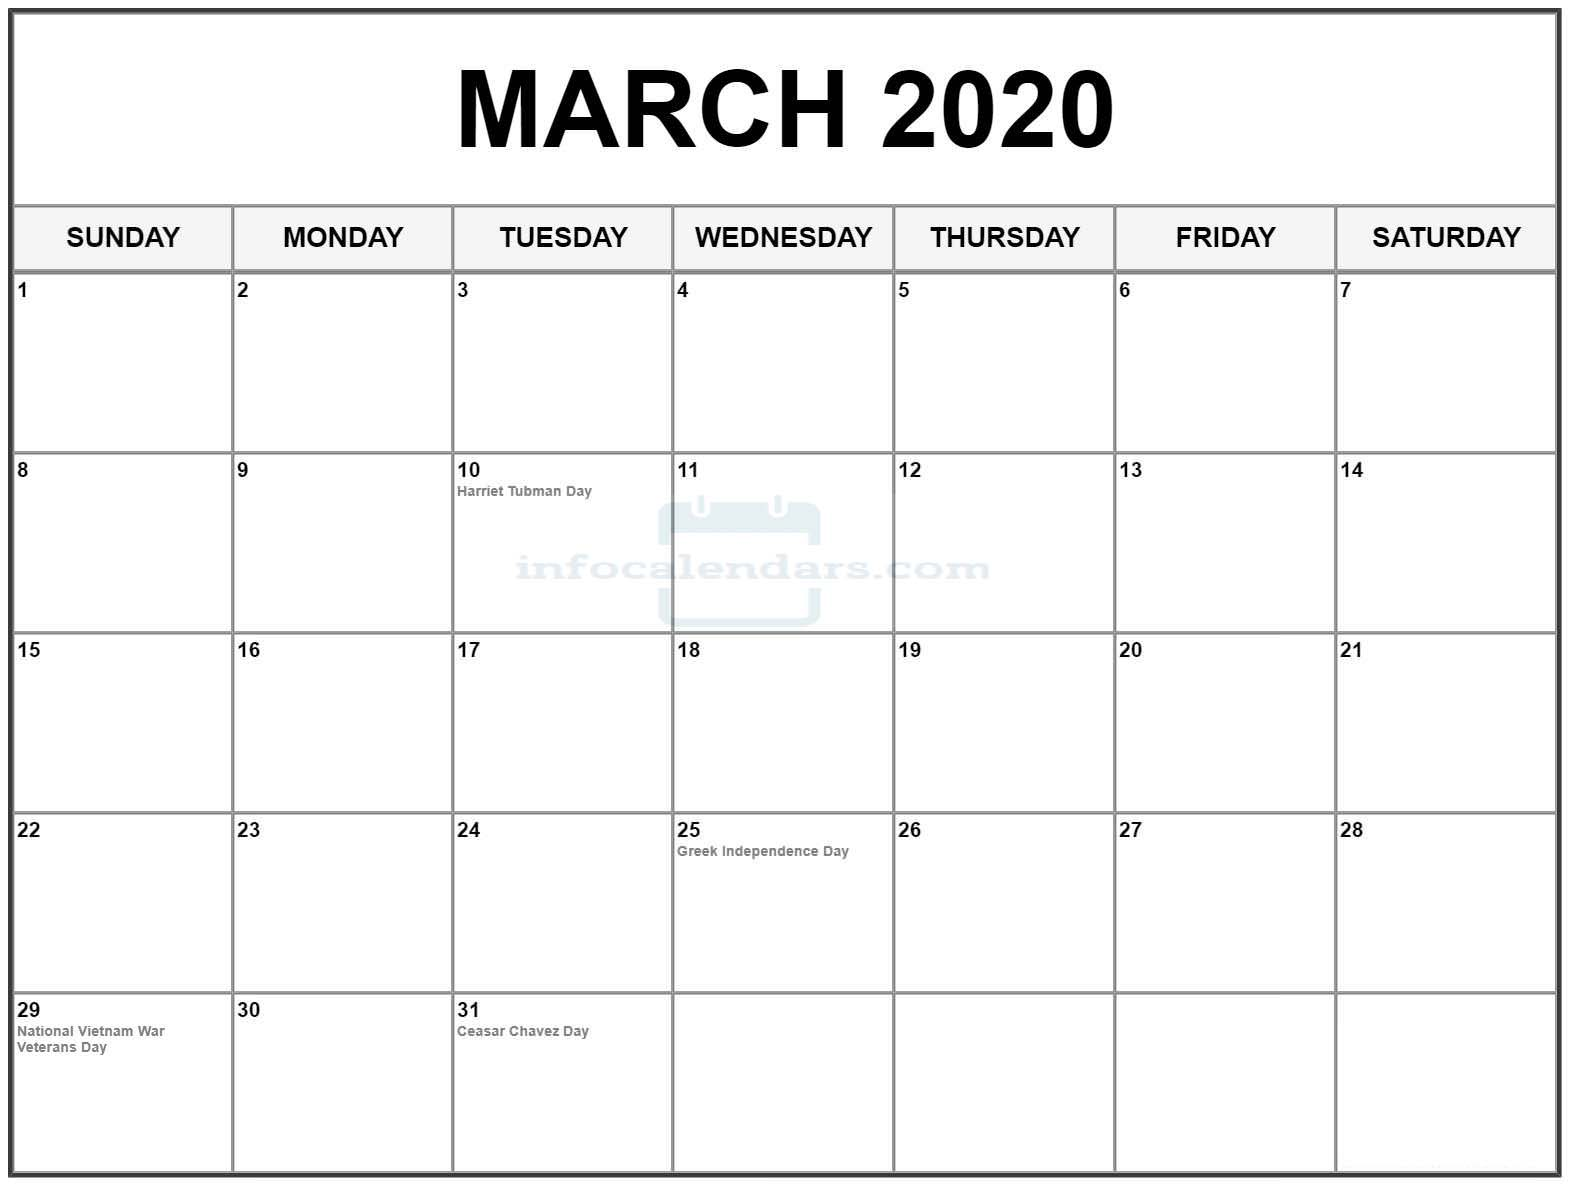 March 2020 Calendar With Holidays Wallpaper